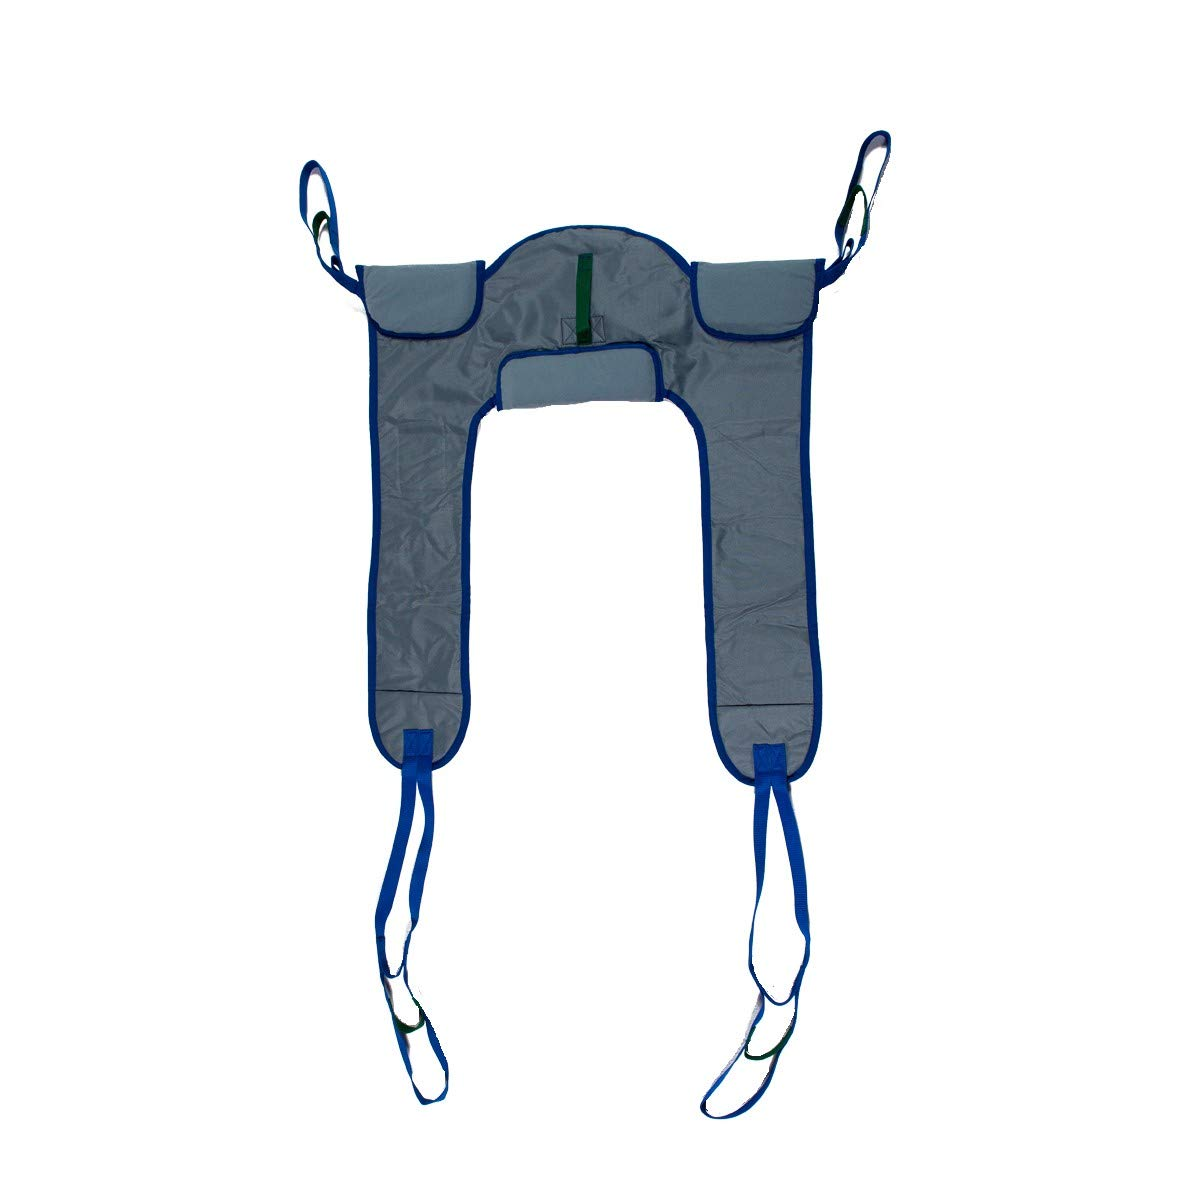 Deluxe Padded Toileting Patient Lift Sling, with Belt, Size (Small), 450lb Weight Capacity